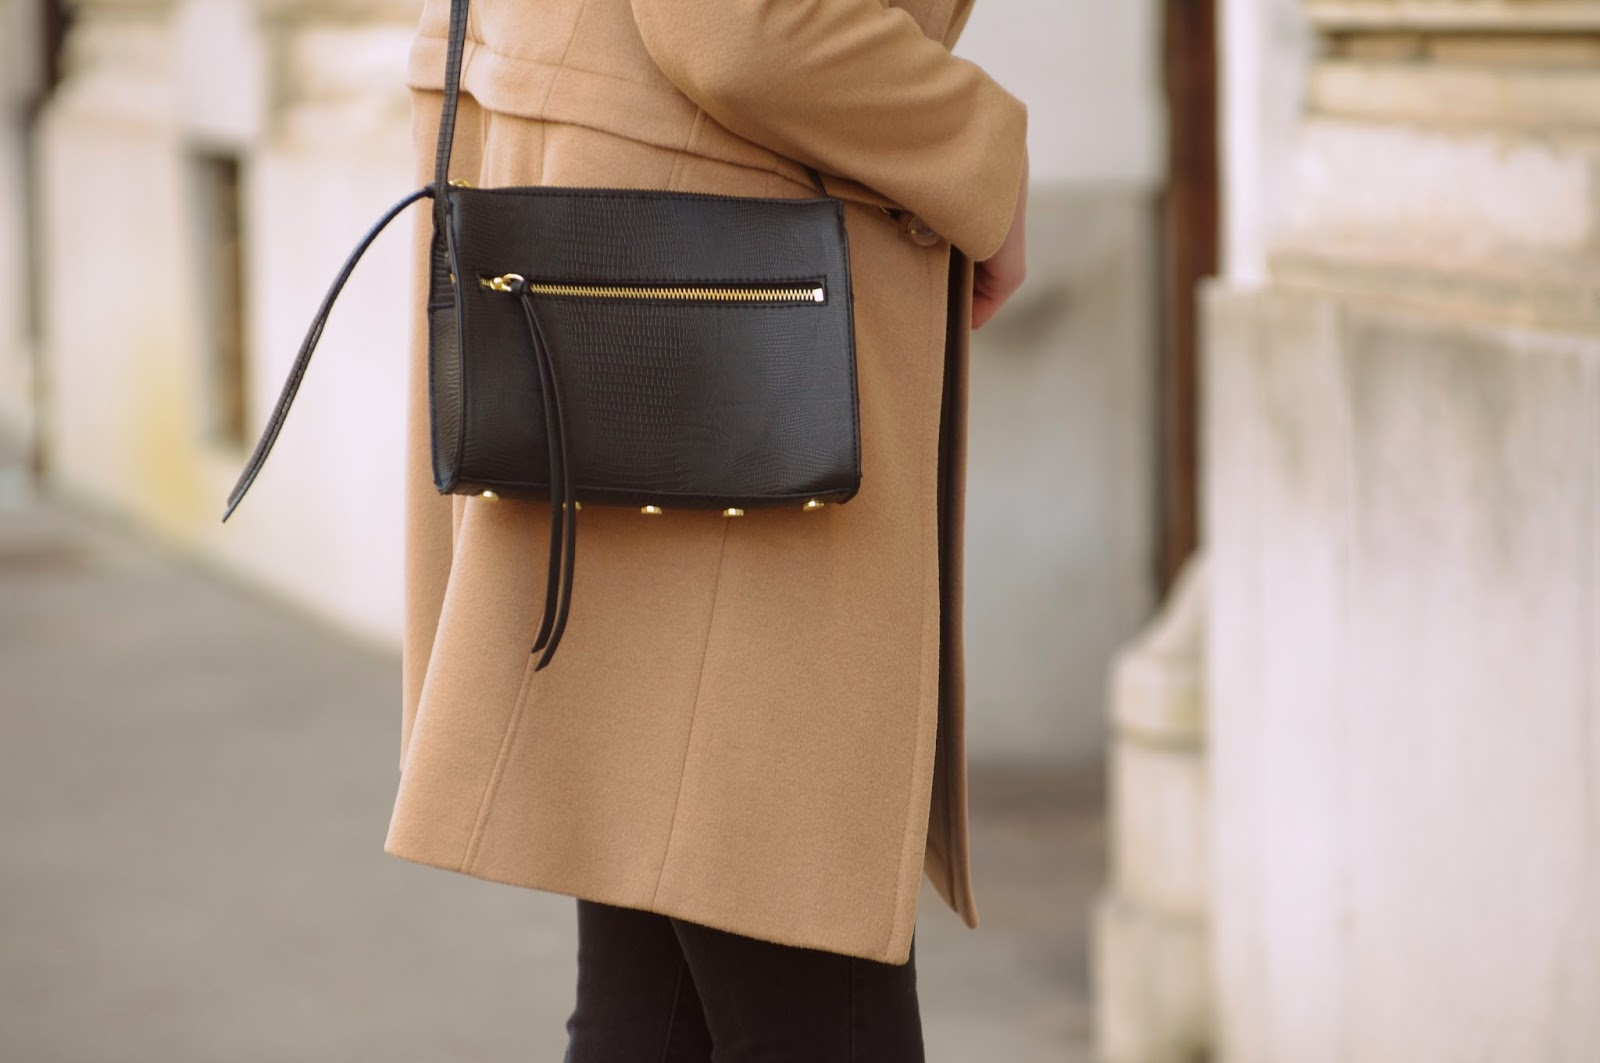 elfs camel coat, hm clutch bag new 2014, rebecca minkopf zipper bag lookalike, nude coat, pointy court heels bershka, style blog blogger, fashion blogger, trends